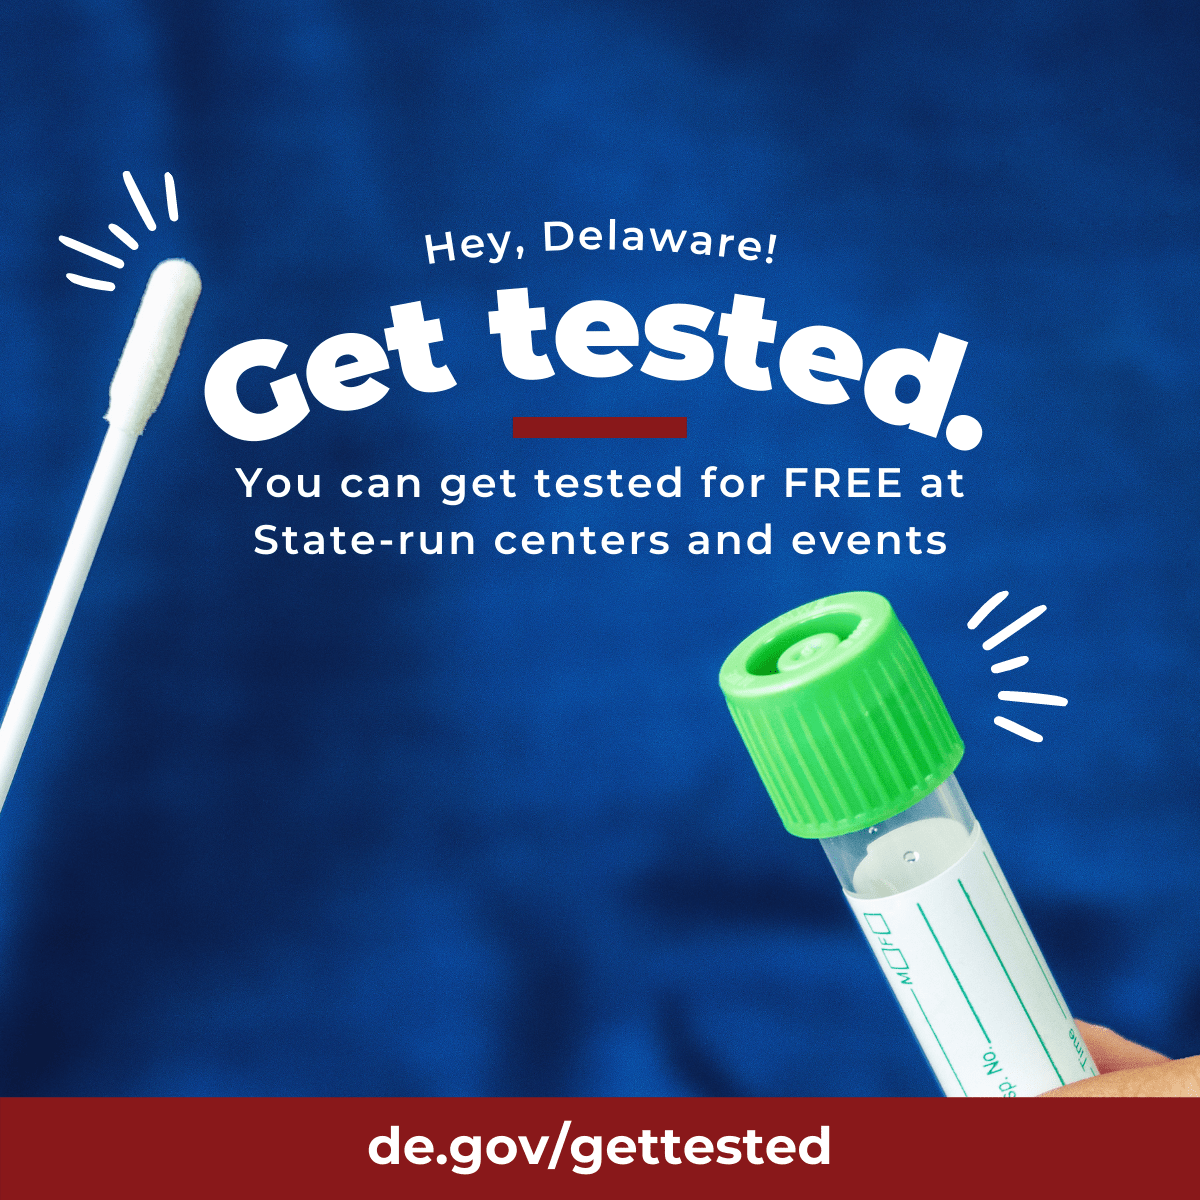 How to get tested for free in Delaware.